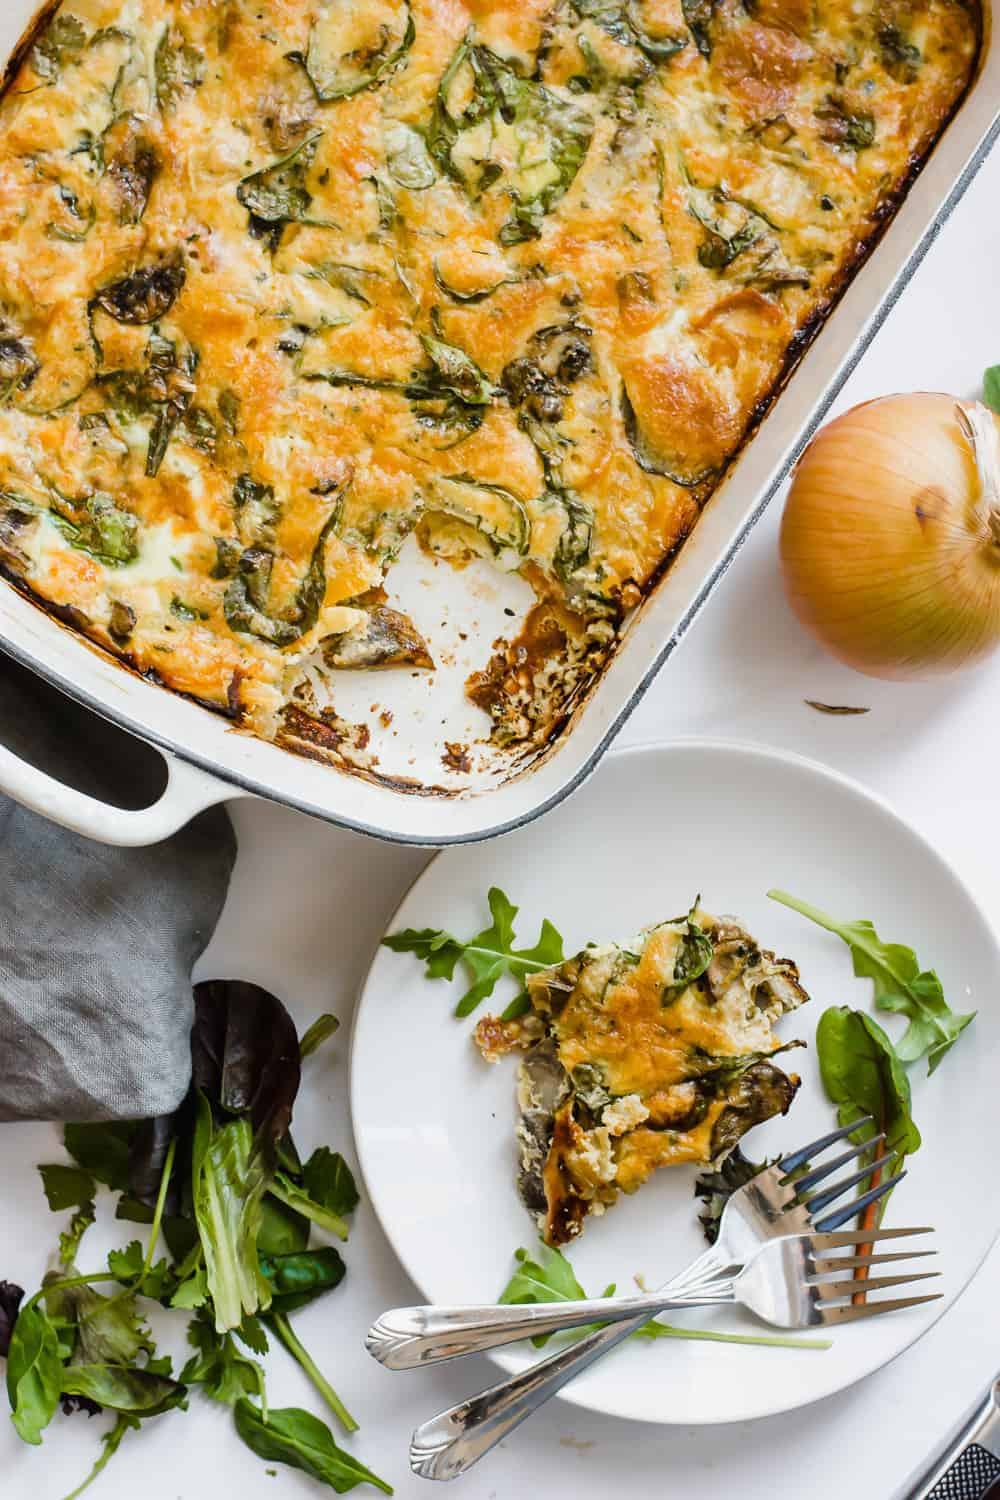 Easy Baked Frittata Recipe with Spinach (Gluten-Free) | vegetarian breakfast recipes, gluten free breakfast recipes, healthy baked frittata, healthy breakfast recipes || The Butter Half #bakedfrittata #vegetarianbreakfast #glutenfreebreakfast #thebutterhalf